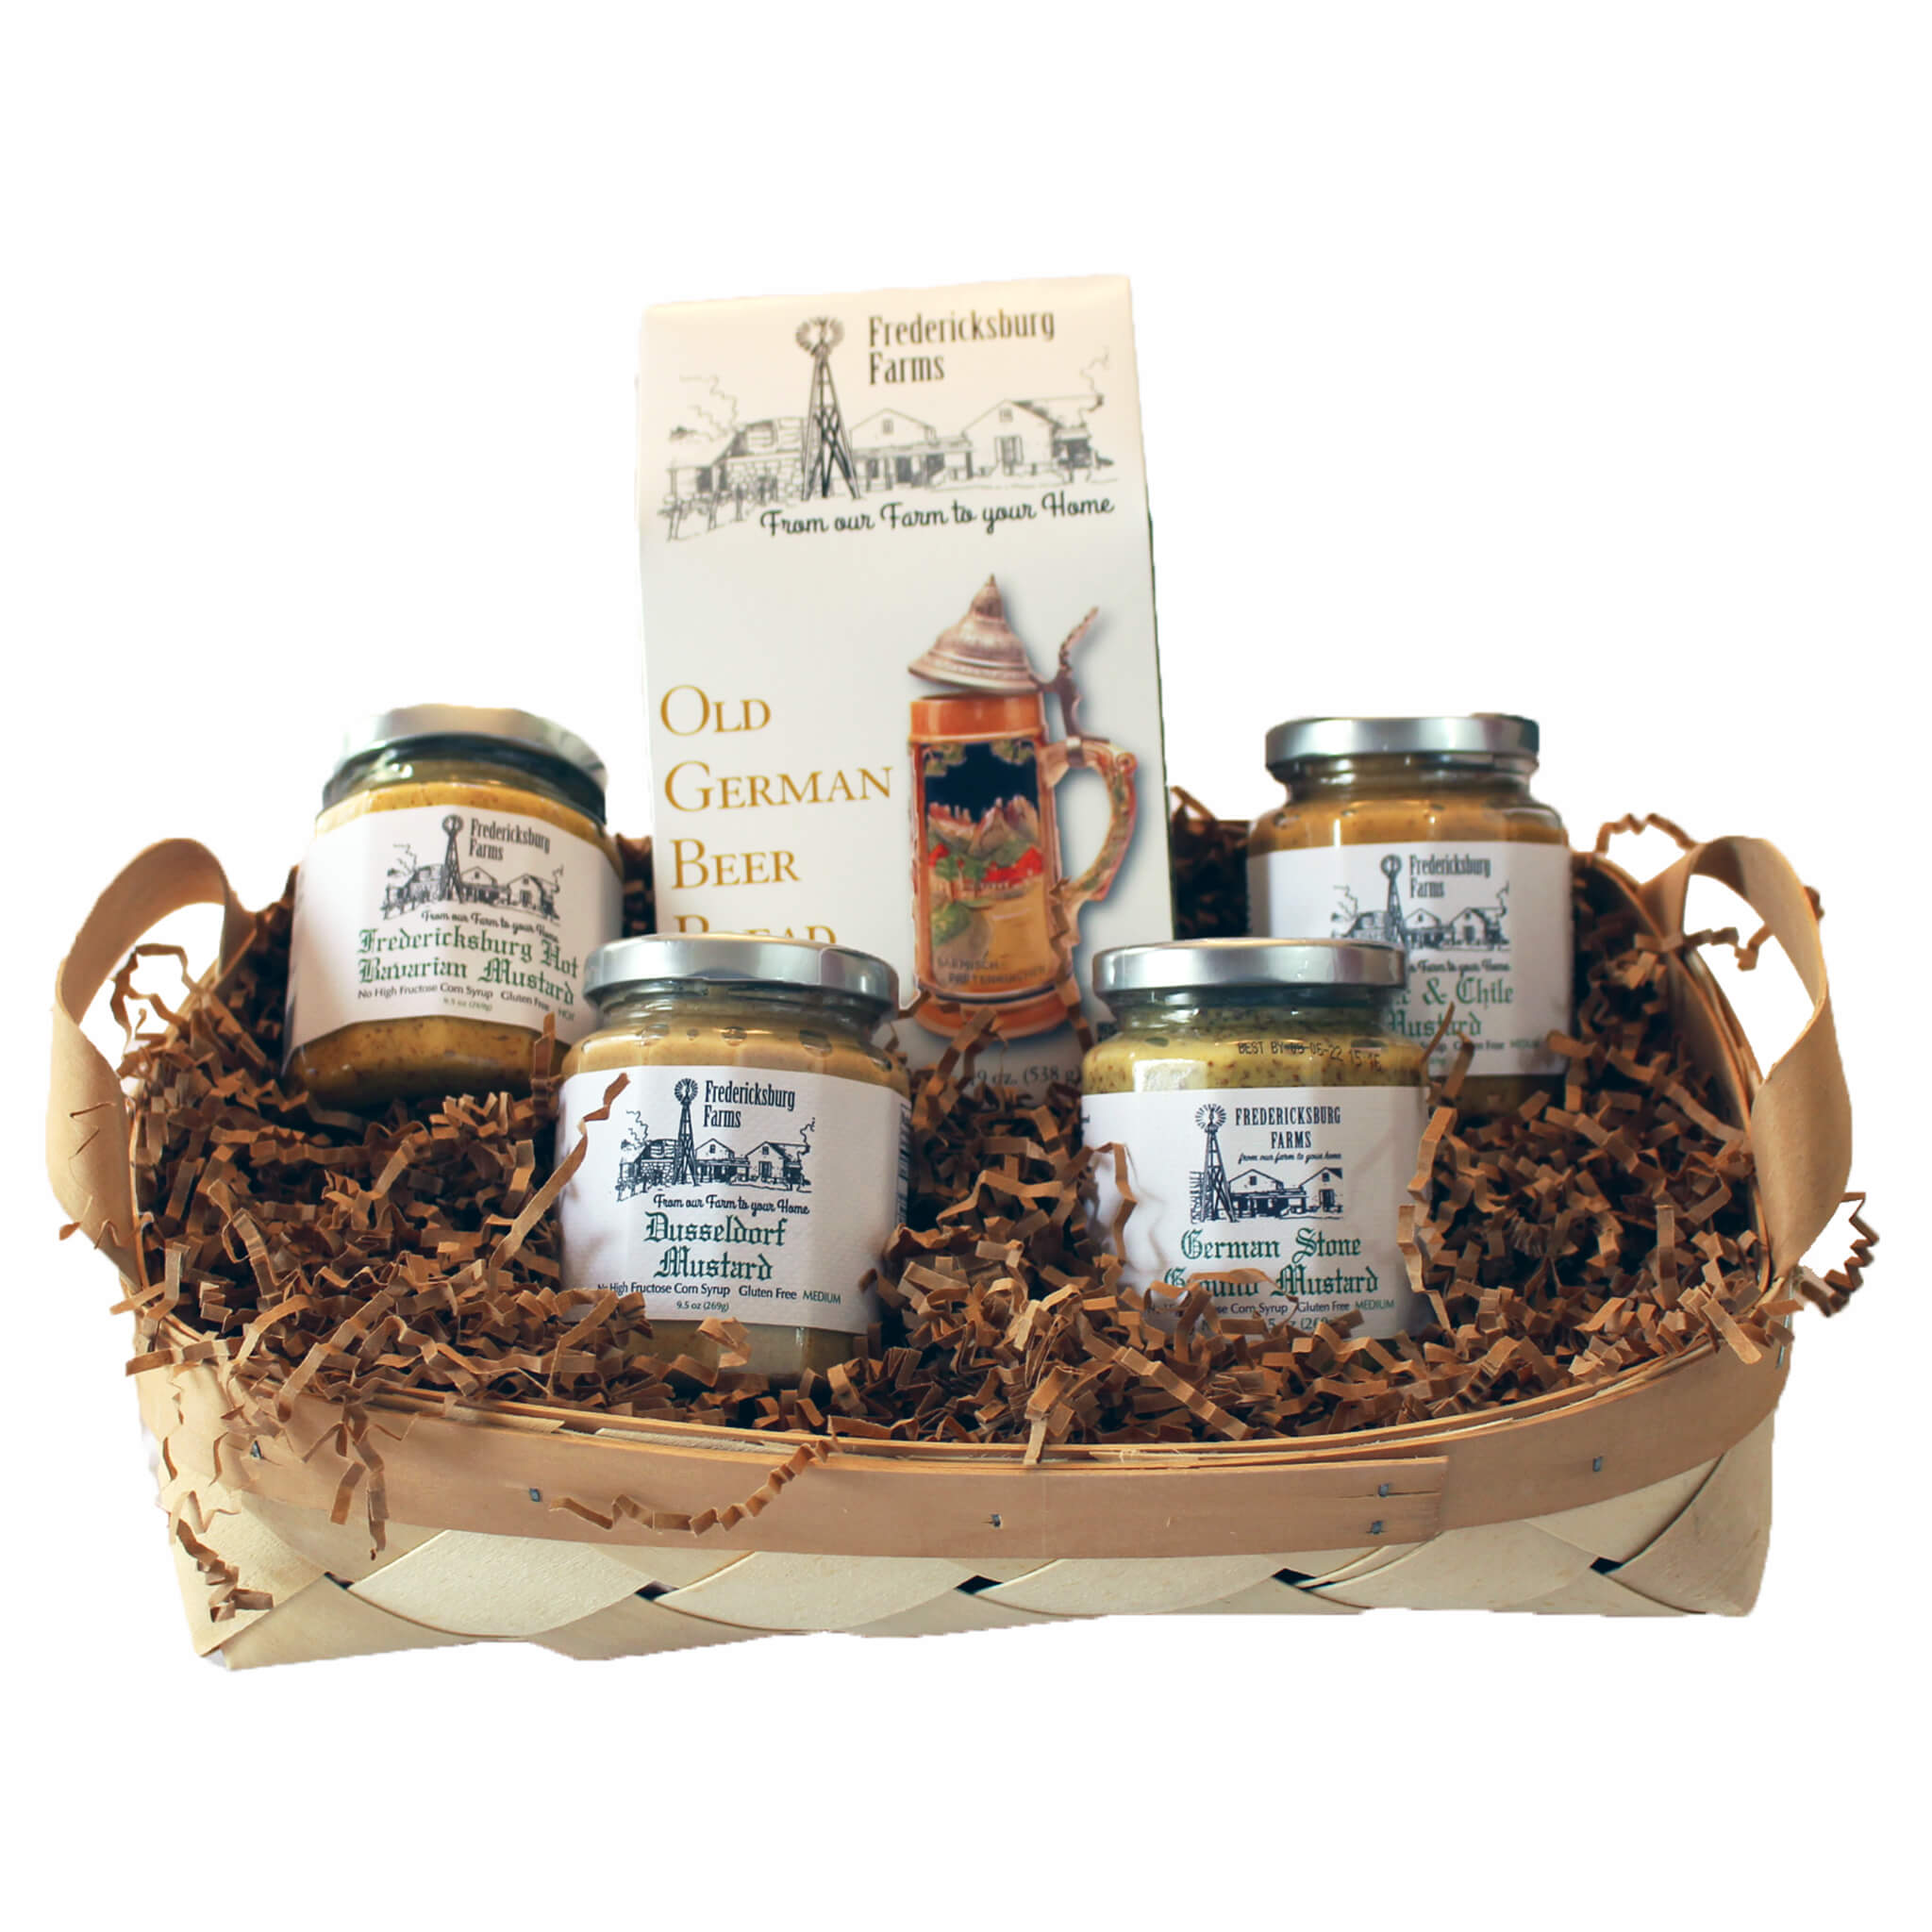 Oktoberfest Basket - Large - Fredericksburg Farms